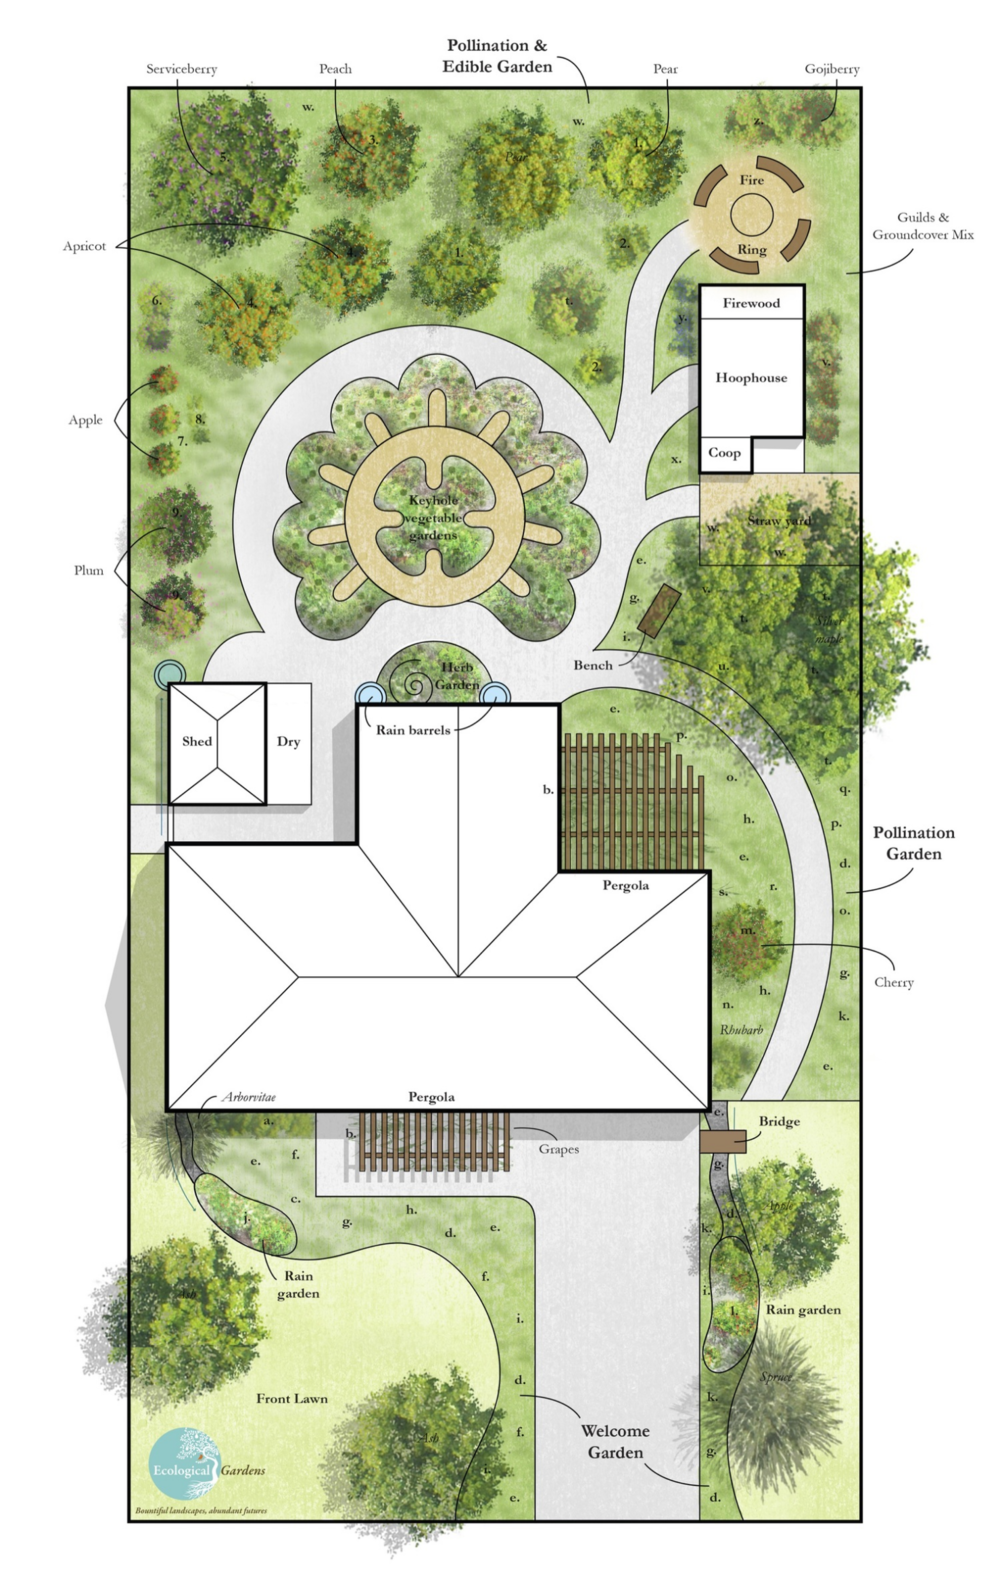 Example Of An Ecological Gardensu0027 Landscape Design For An Urban Homestead  With Areas For Edible